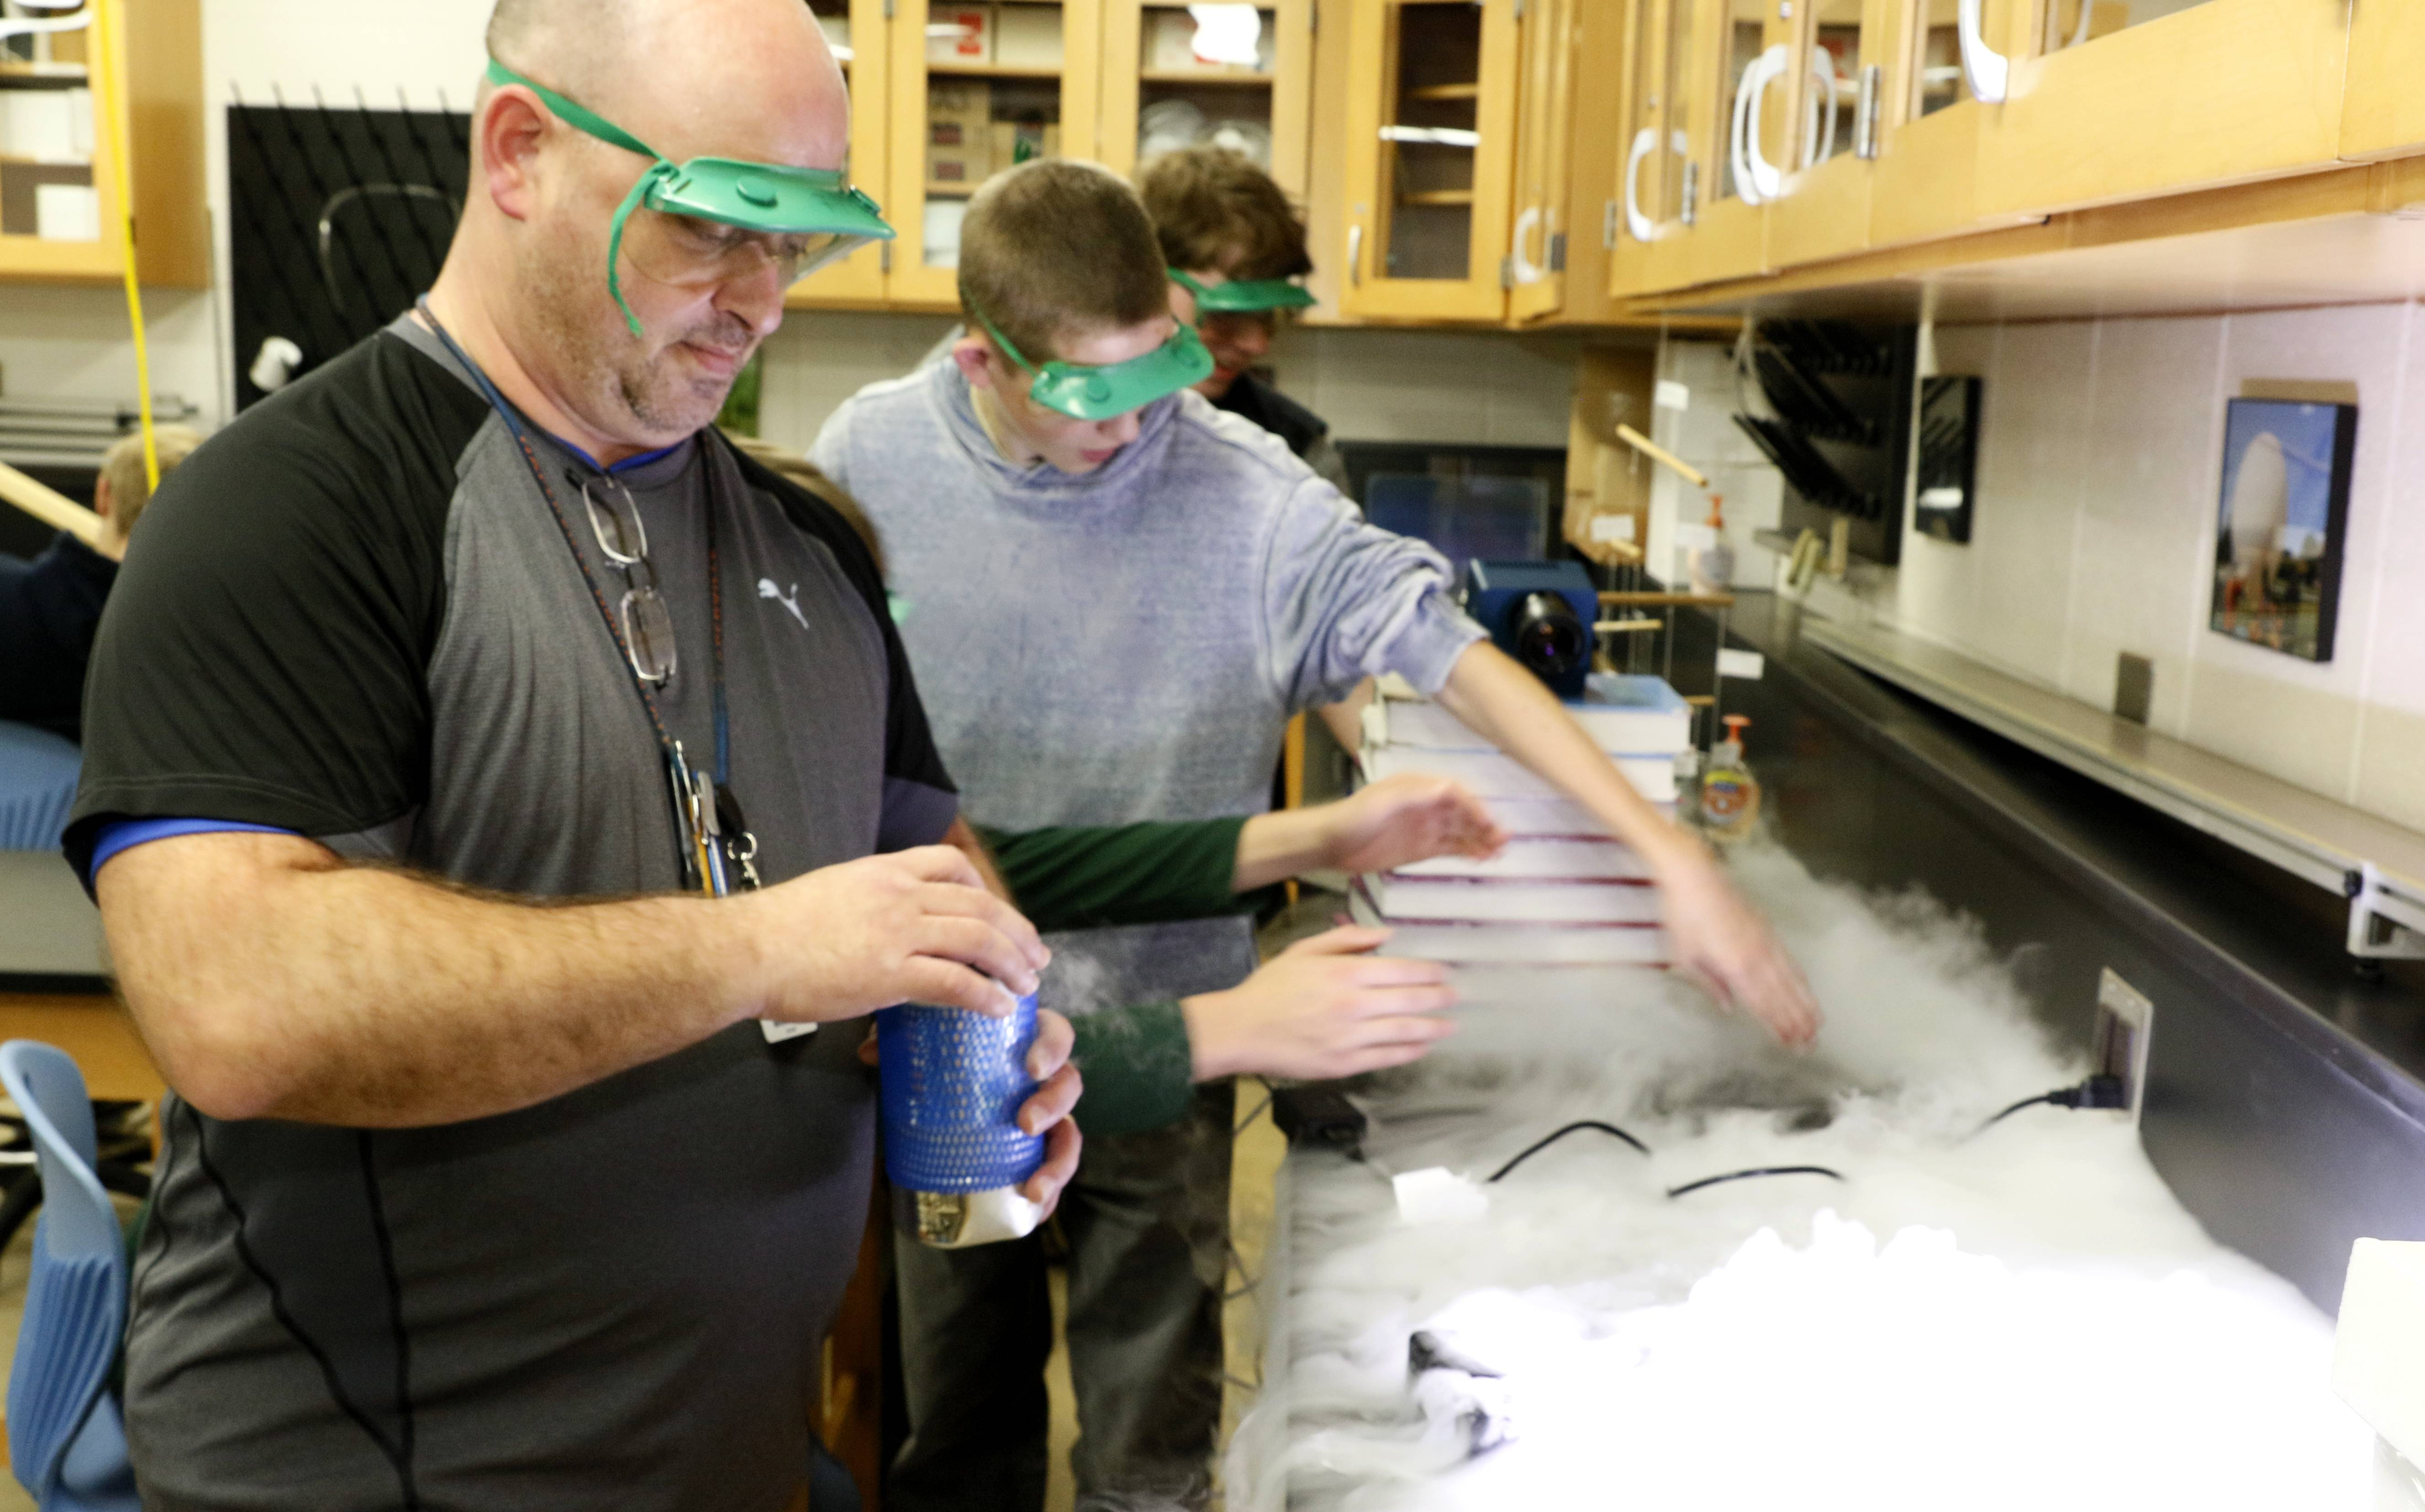 The highest among unit districts: Naperville North High School science teacher Mark Rowzee and his students work on a project involving mixing hot water with liquid nitrogen. Naperville District 203 offers top teacher pay among unit districts with an average salary of $78,253.